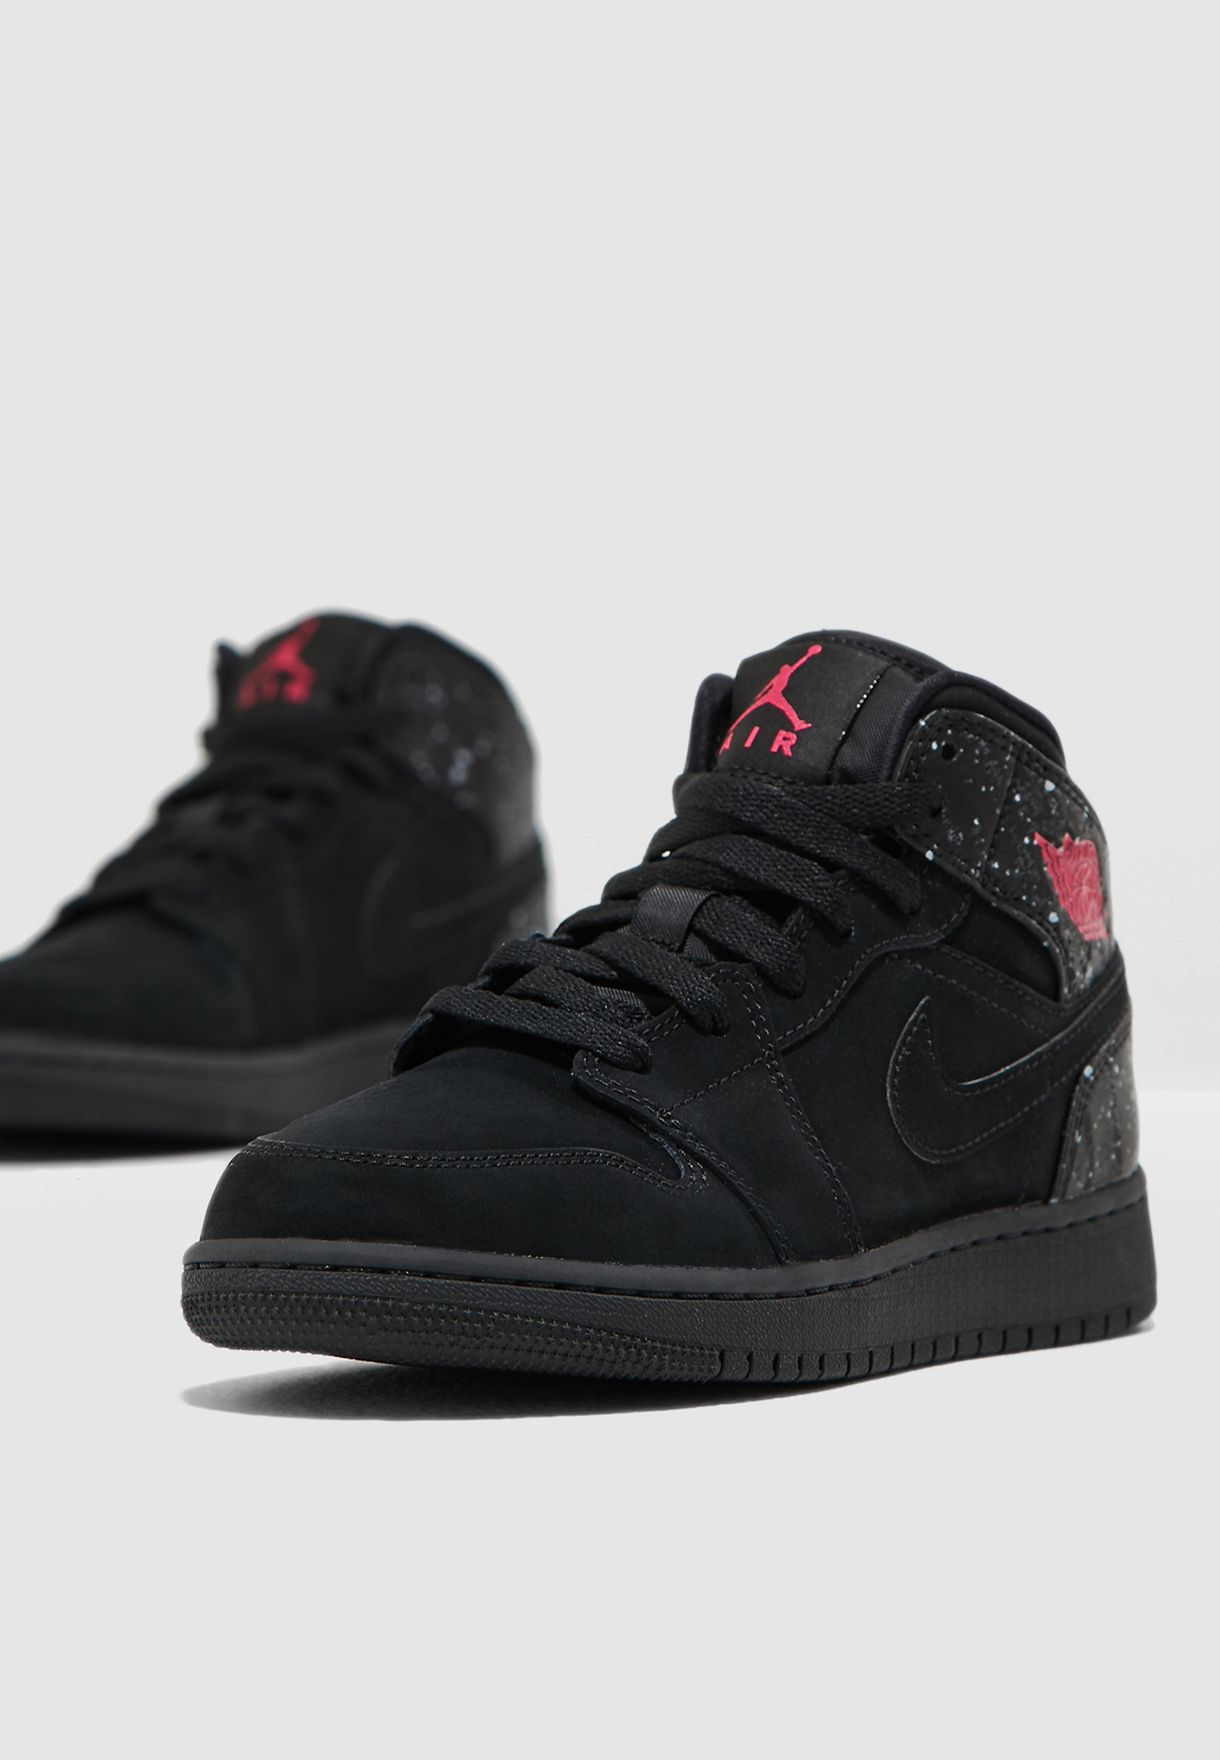 fb893826553010 Shop Nike black Air Jordan 1 Mid 555112-001 for Kids in Kuwait -  72704SH19HNP